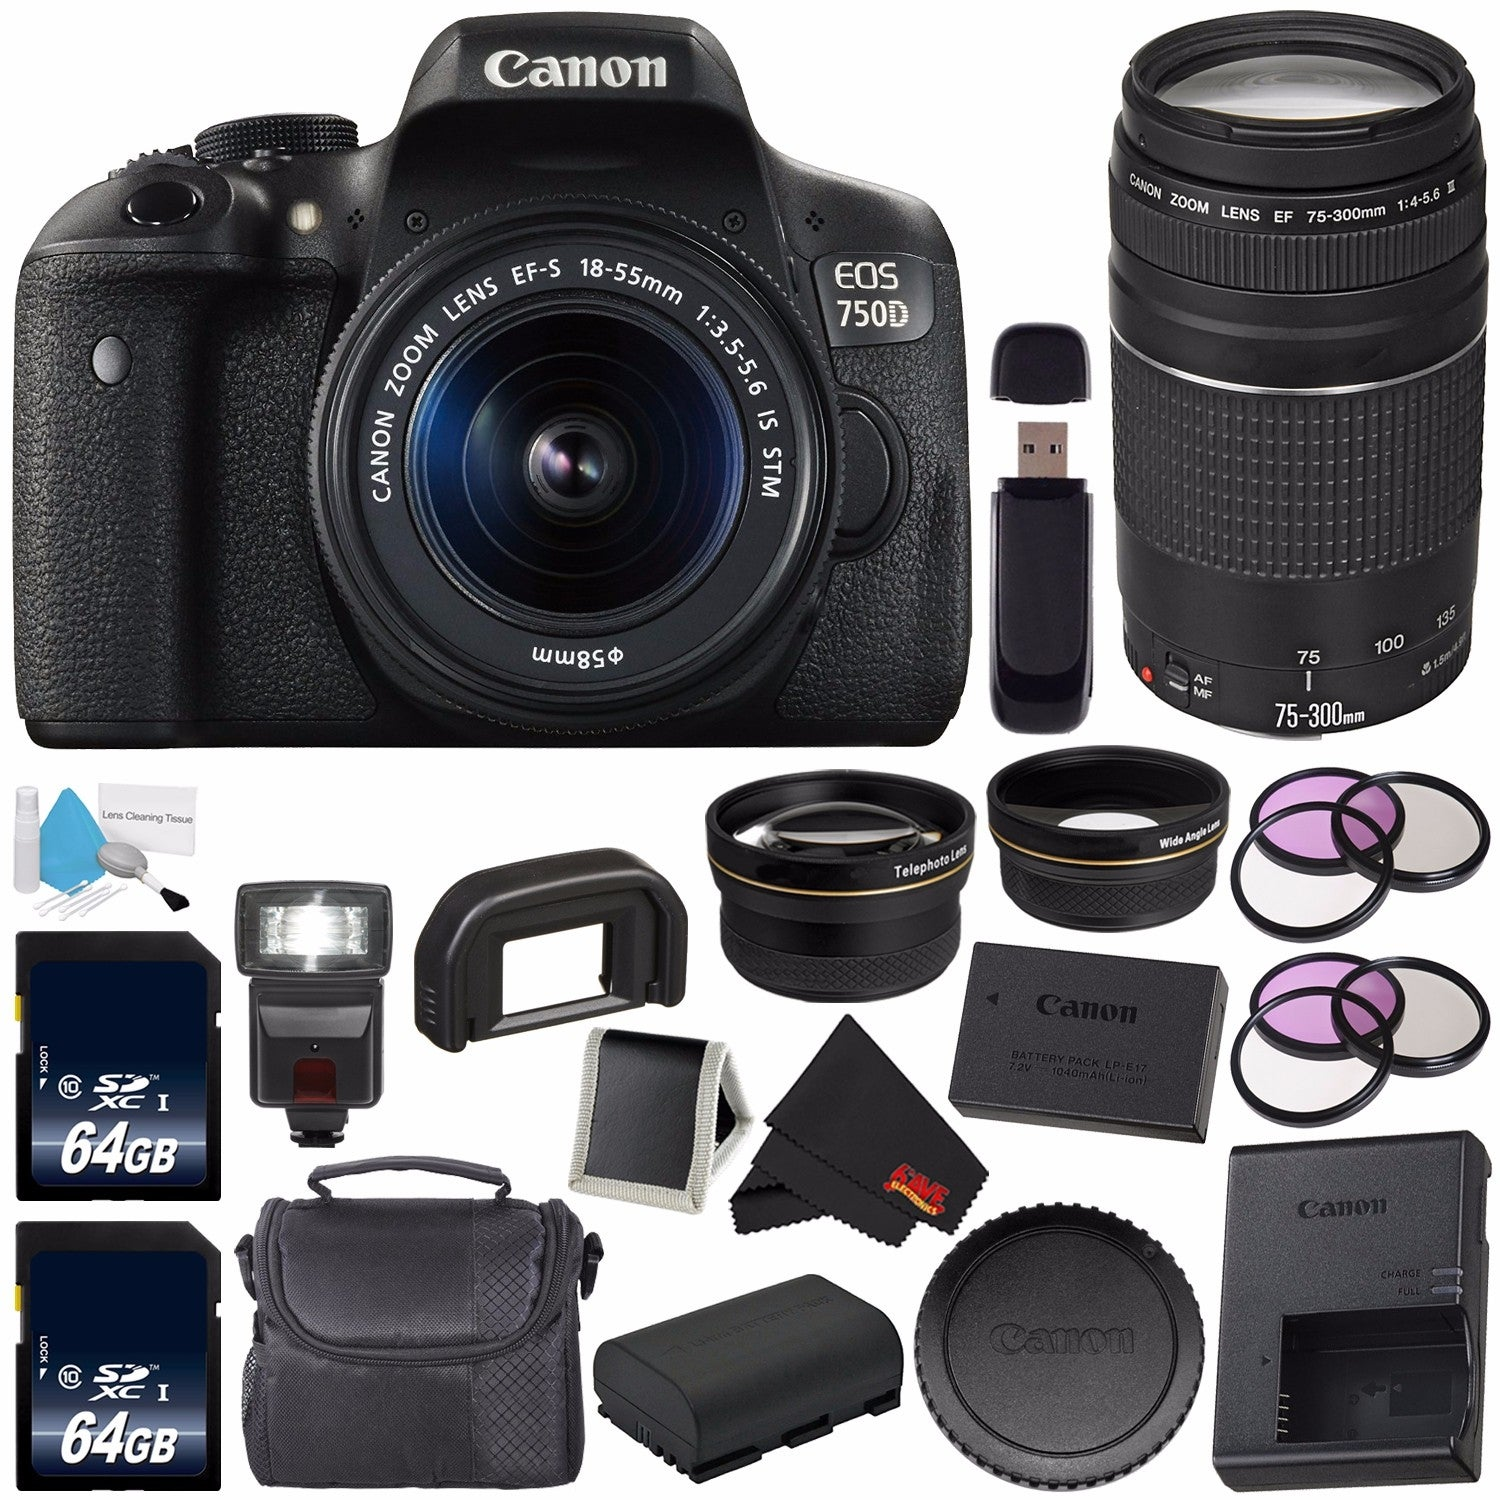 Shop Canon Eos Rebel T6i 750d Dslr Camera With 18 55mm Lens Intl 760d Body Only Wifi Version Free Shipping Today 18245915